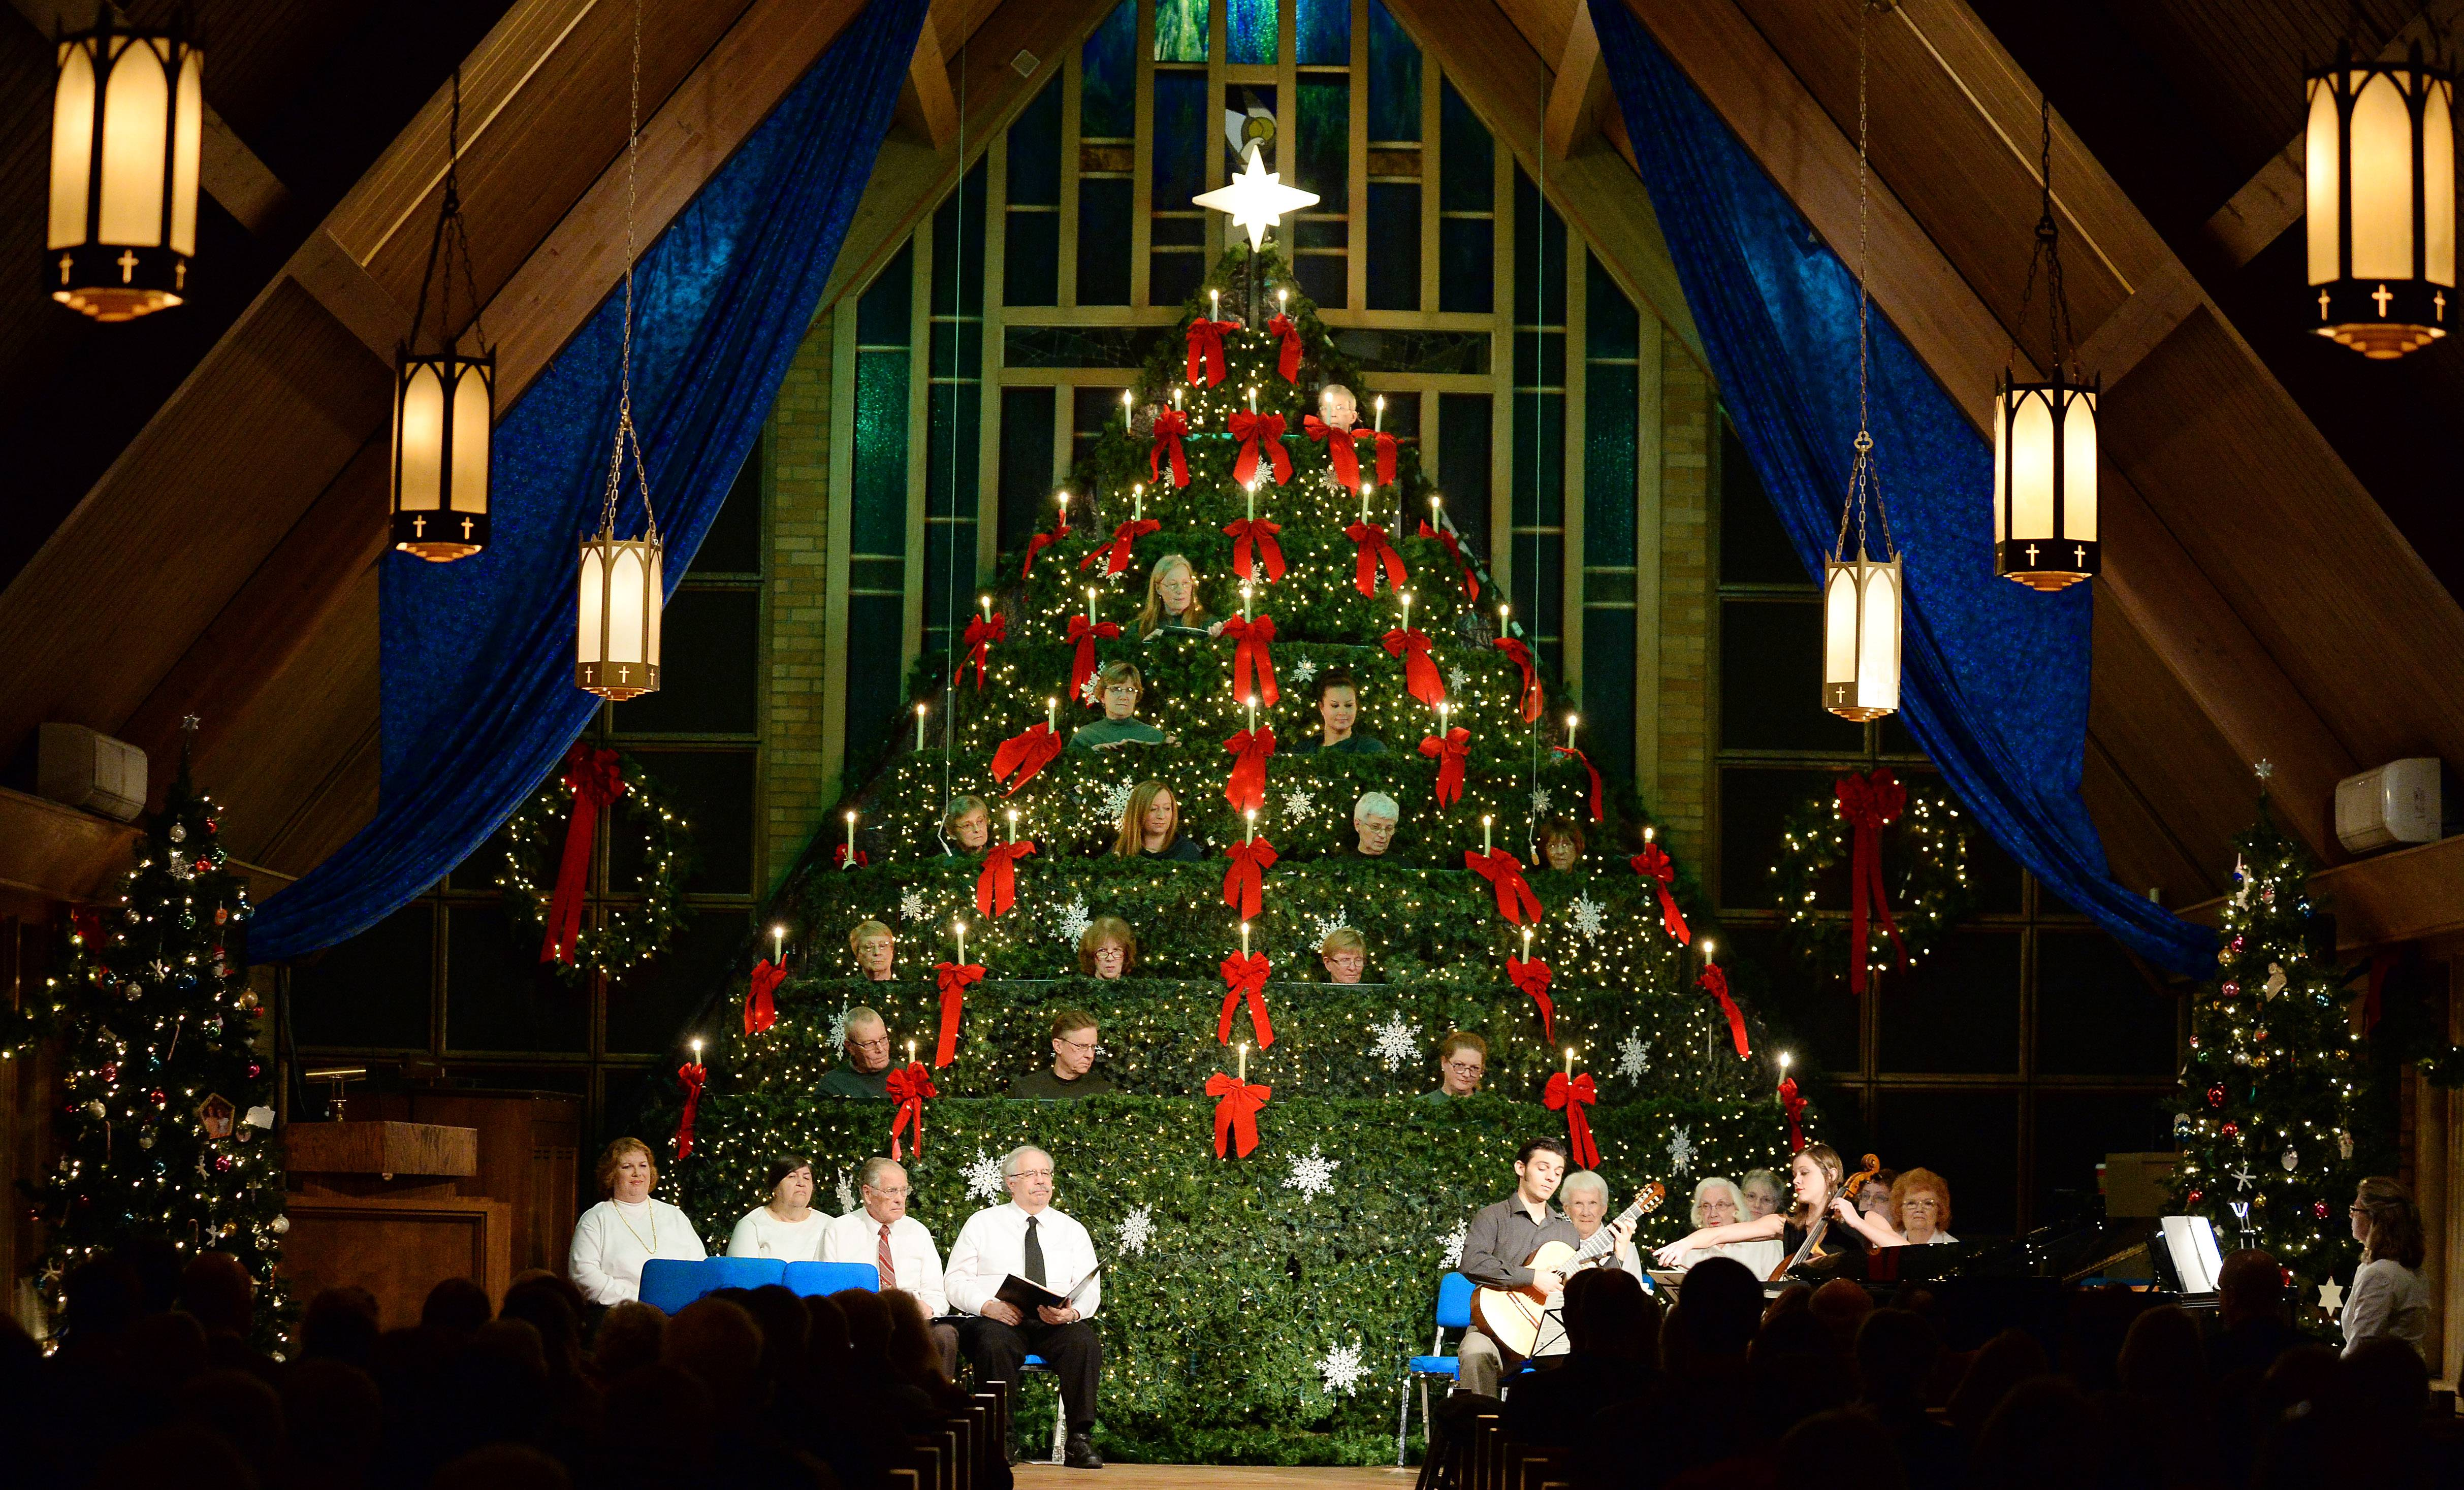 A choir and Christmas music were part of festivities at the Community Presbyterian Church in Mt. Prospect on Friday.